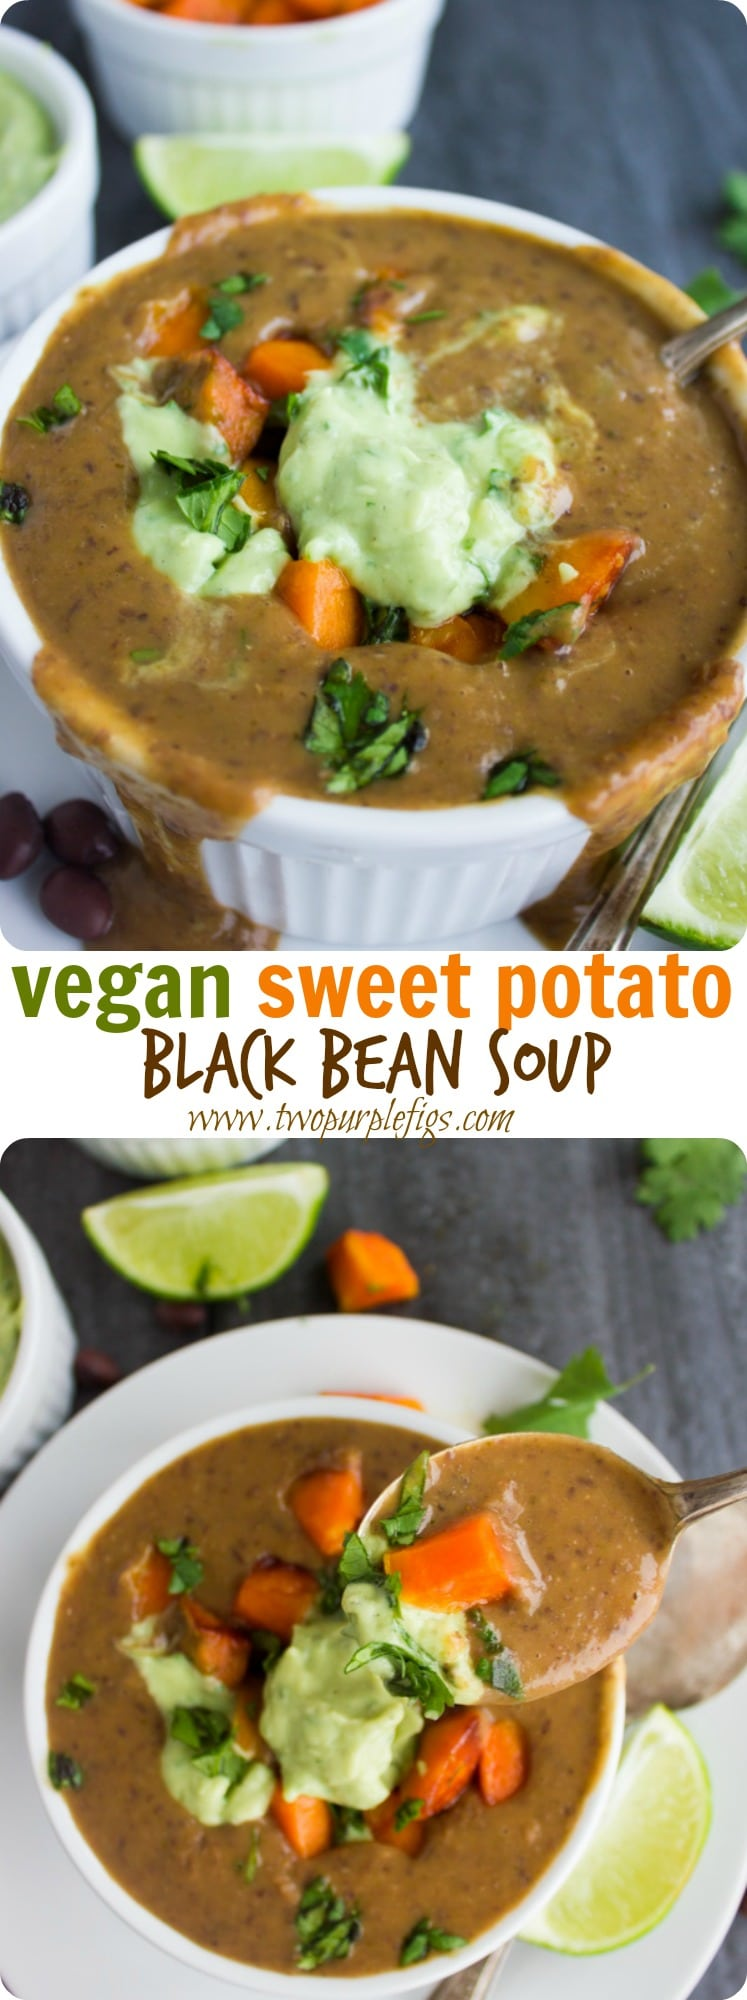 VEGAN SWEET POTATO BLACK BEAN SOUP | This easy yet impressive vegan recipe takes the Cuban comfort food classic Black Bean Soup to the next level with the addition of roasted sweet potatoes and a smooth and light avocado crema on top! The perfect vegetarian soup to serve on a cold winter day. #souprecipe, #Cuban, #blackbeansoup, #Mexican, #vegetarian,